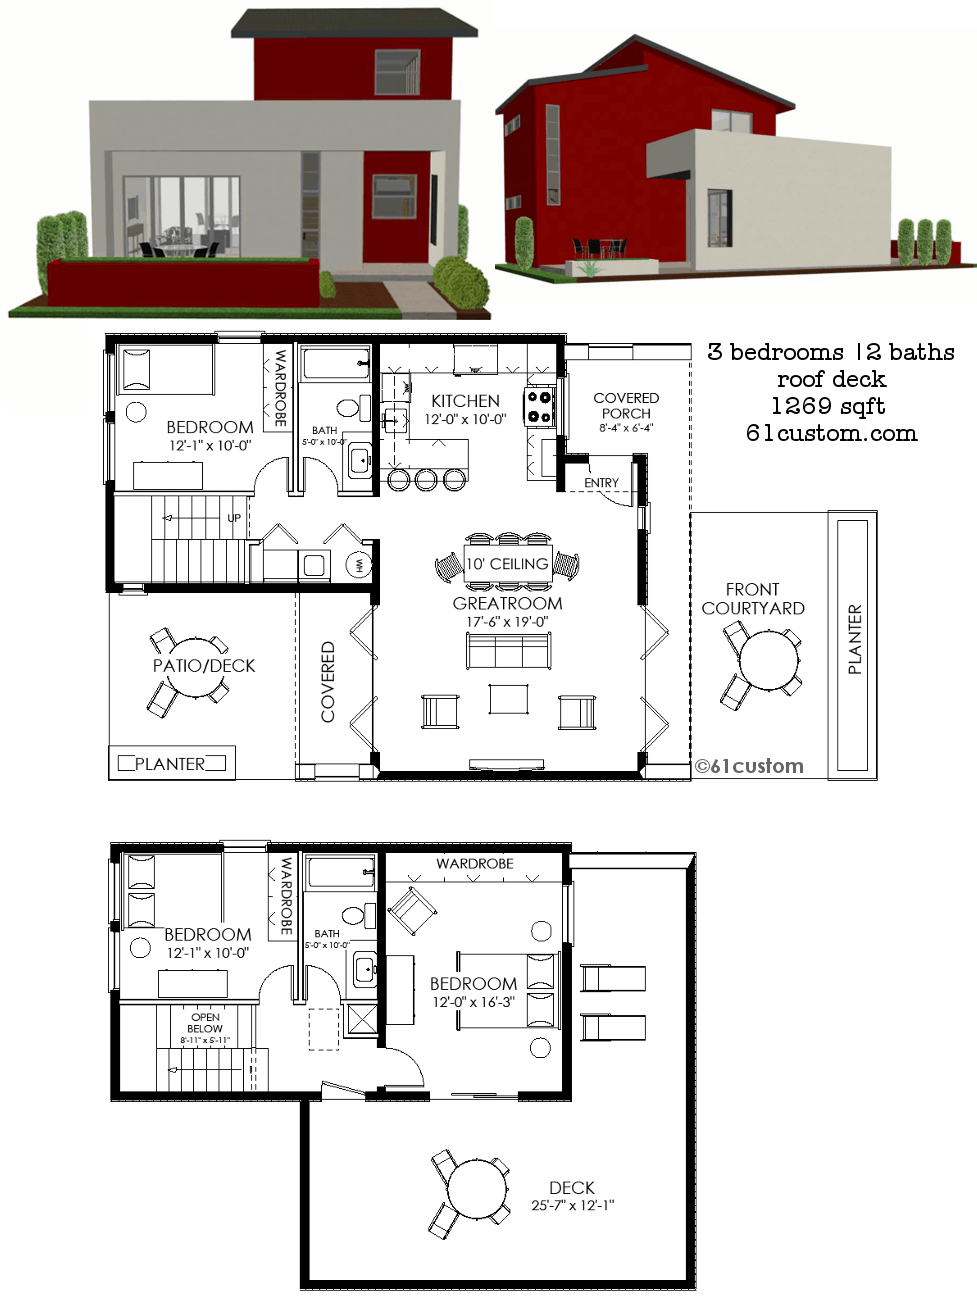 Contemporary Small House Plan on small contemporary house design, simple contemporary house design, narrow house interior design, narrow house plan, modern contemporary house design, narrow cottage house design, narrow concrete house design, mountain contemporary house design,